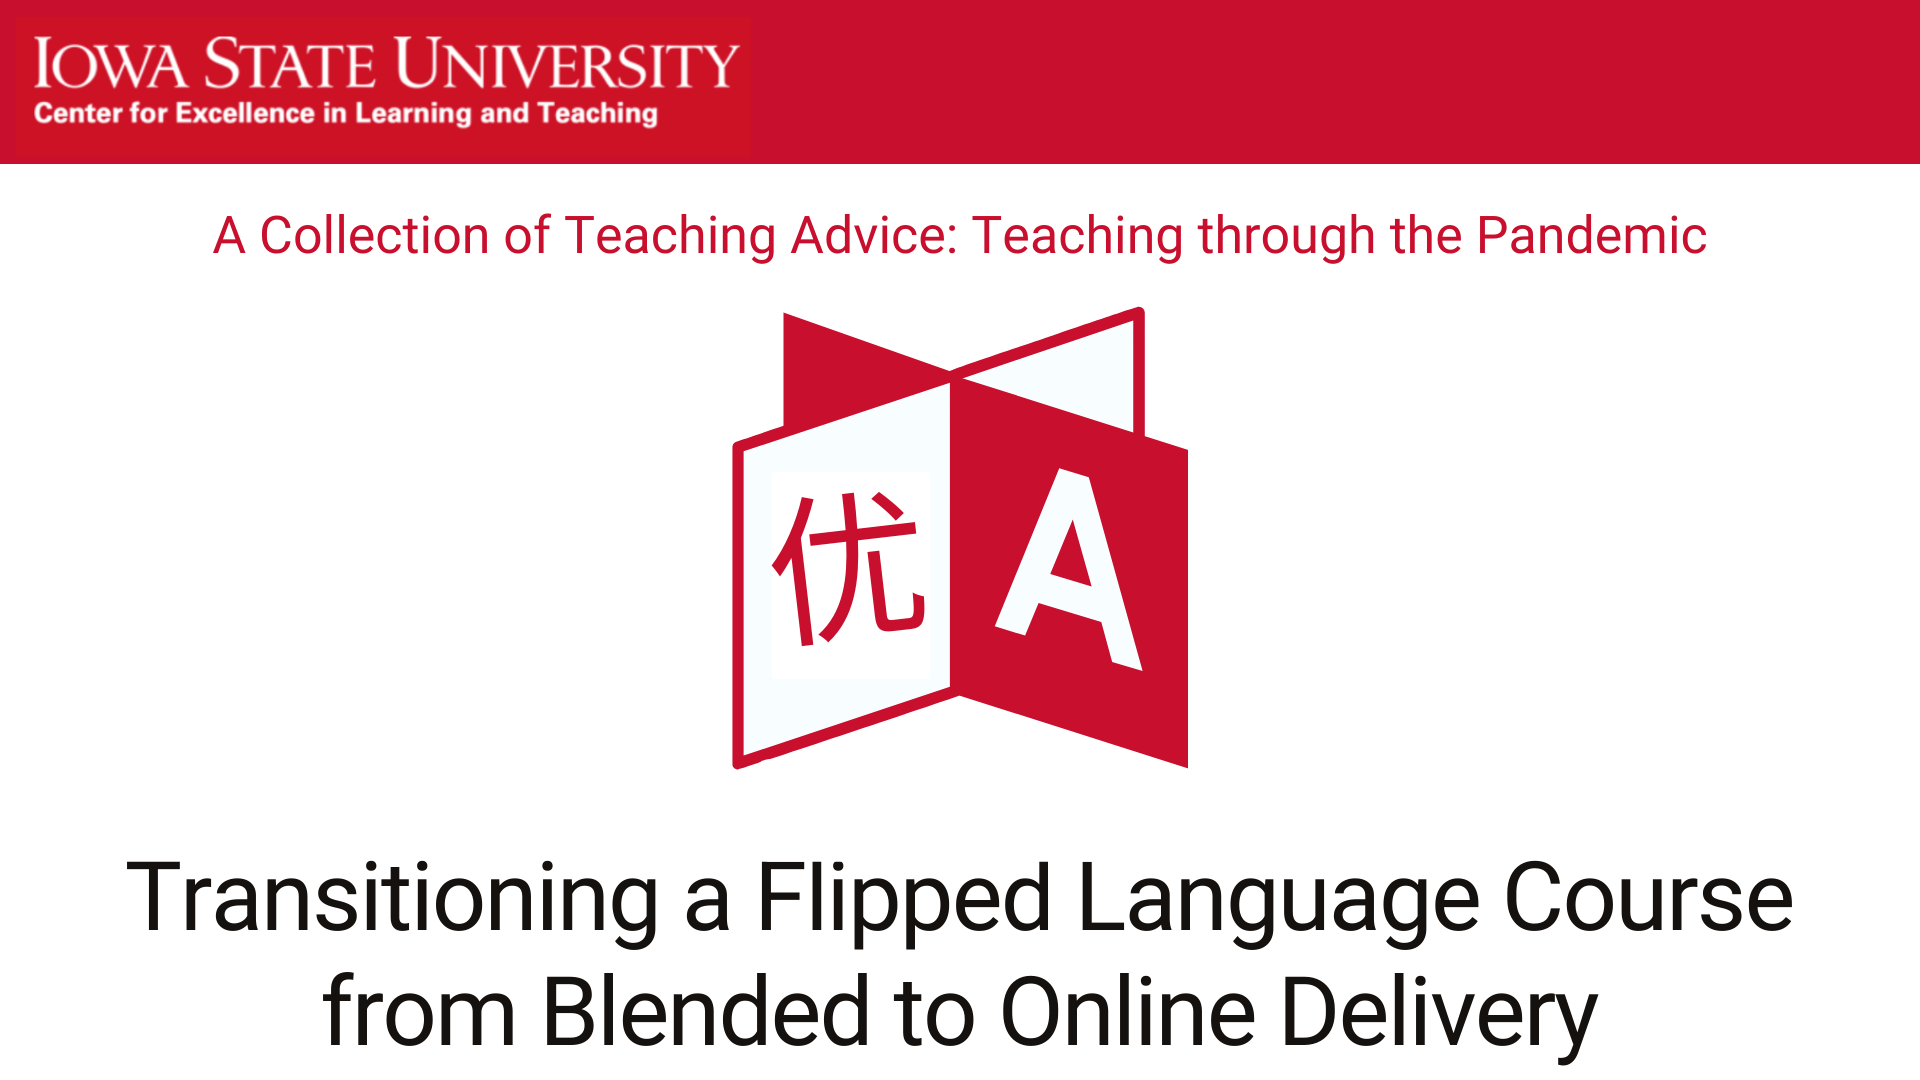 Transitioning a flipped language course from blended to online delivery, Dr. Shenglan Zhang